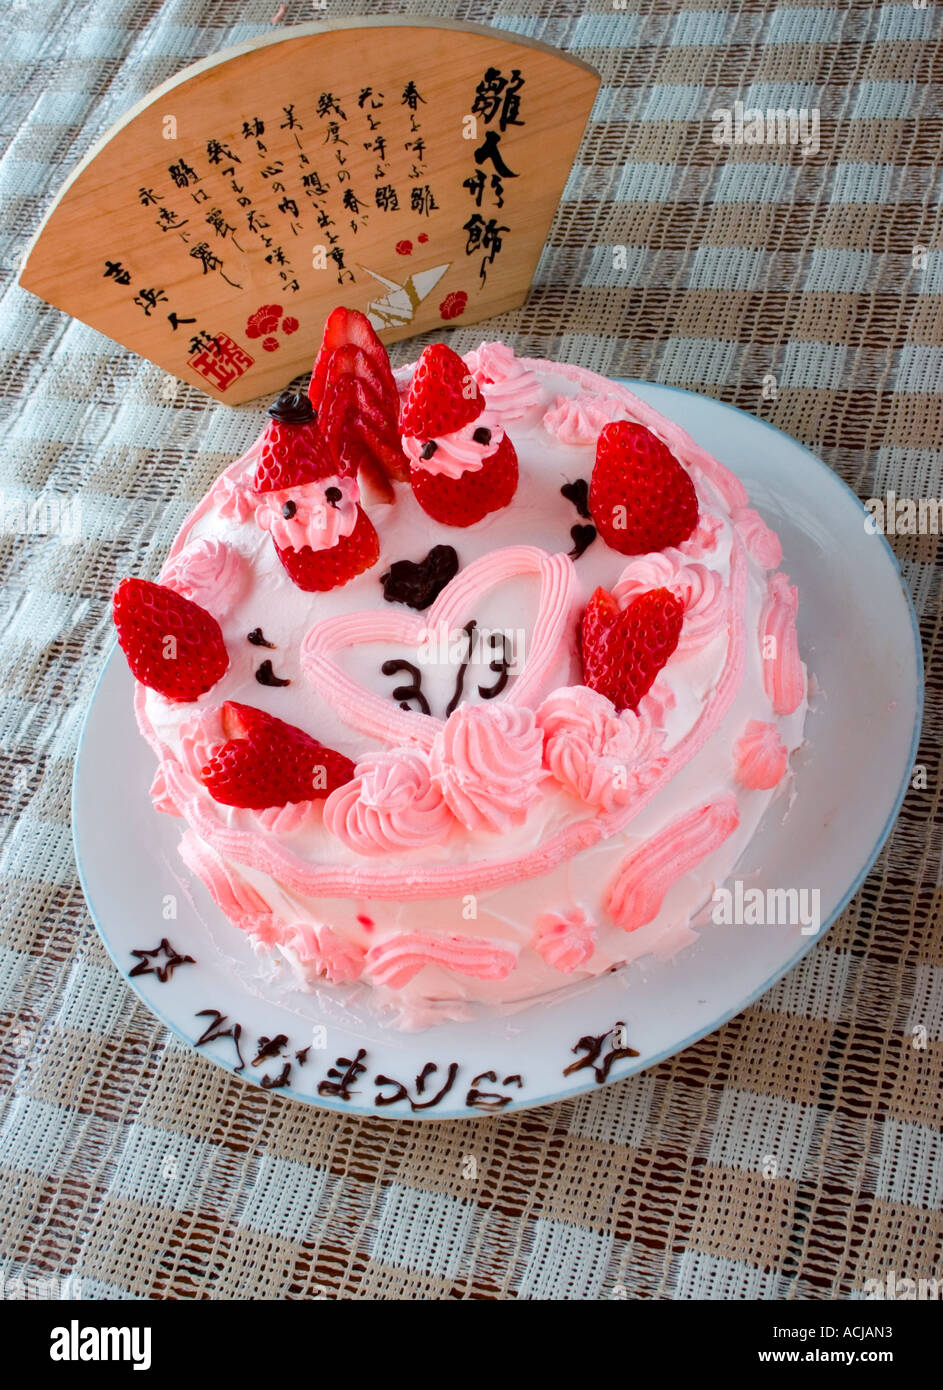 A Japanese strawberry birthday cake Stock Photo: 7524818 - Alamy